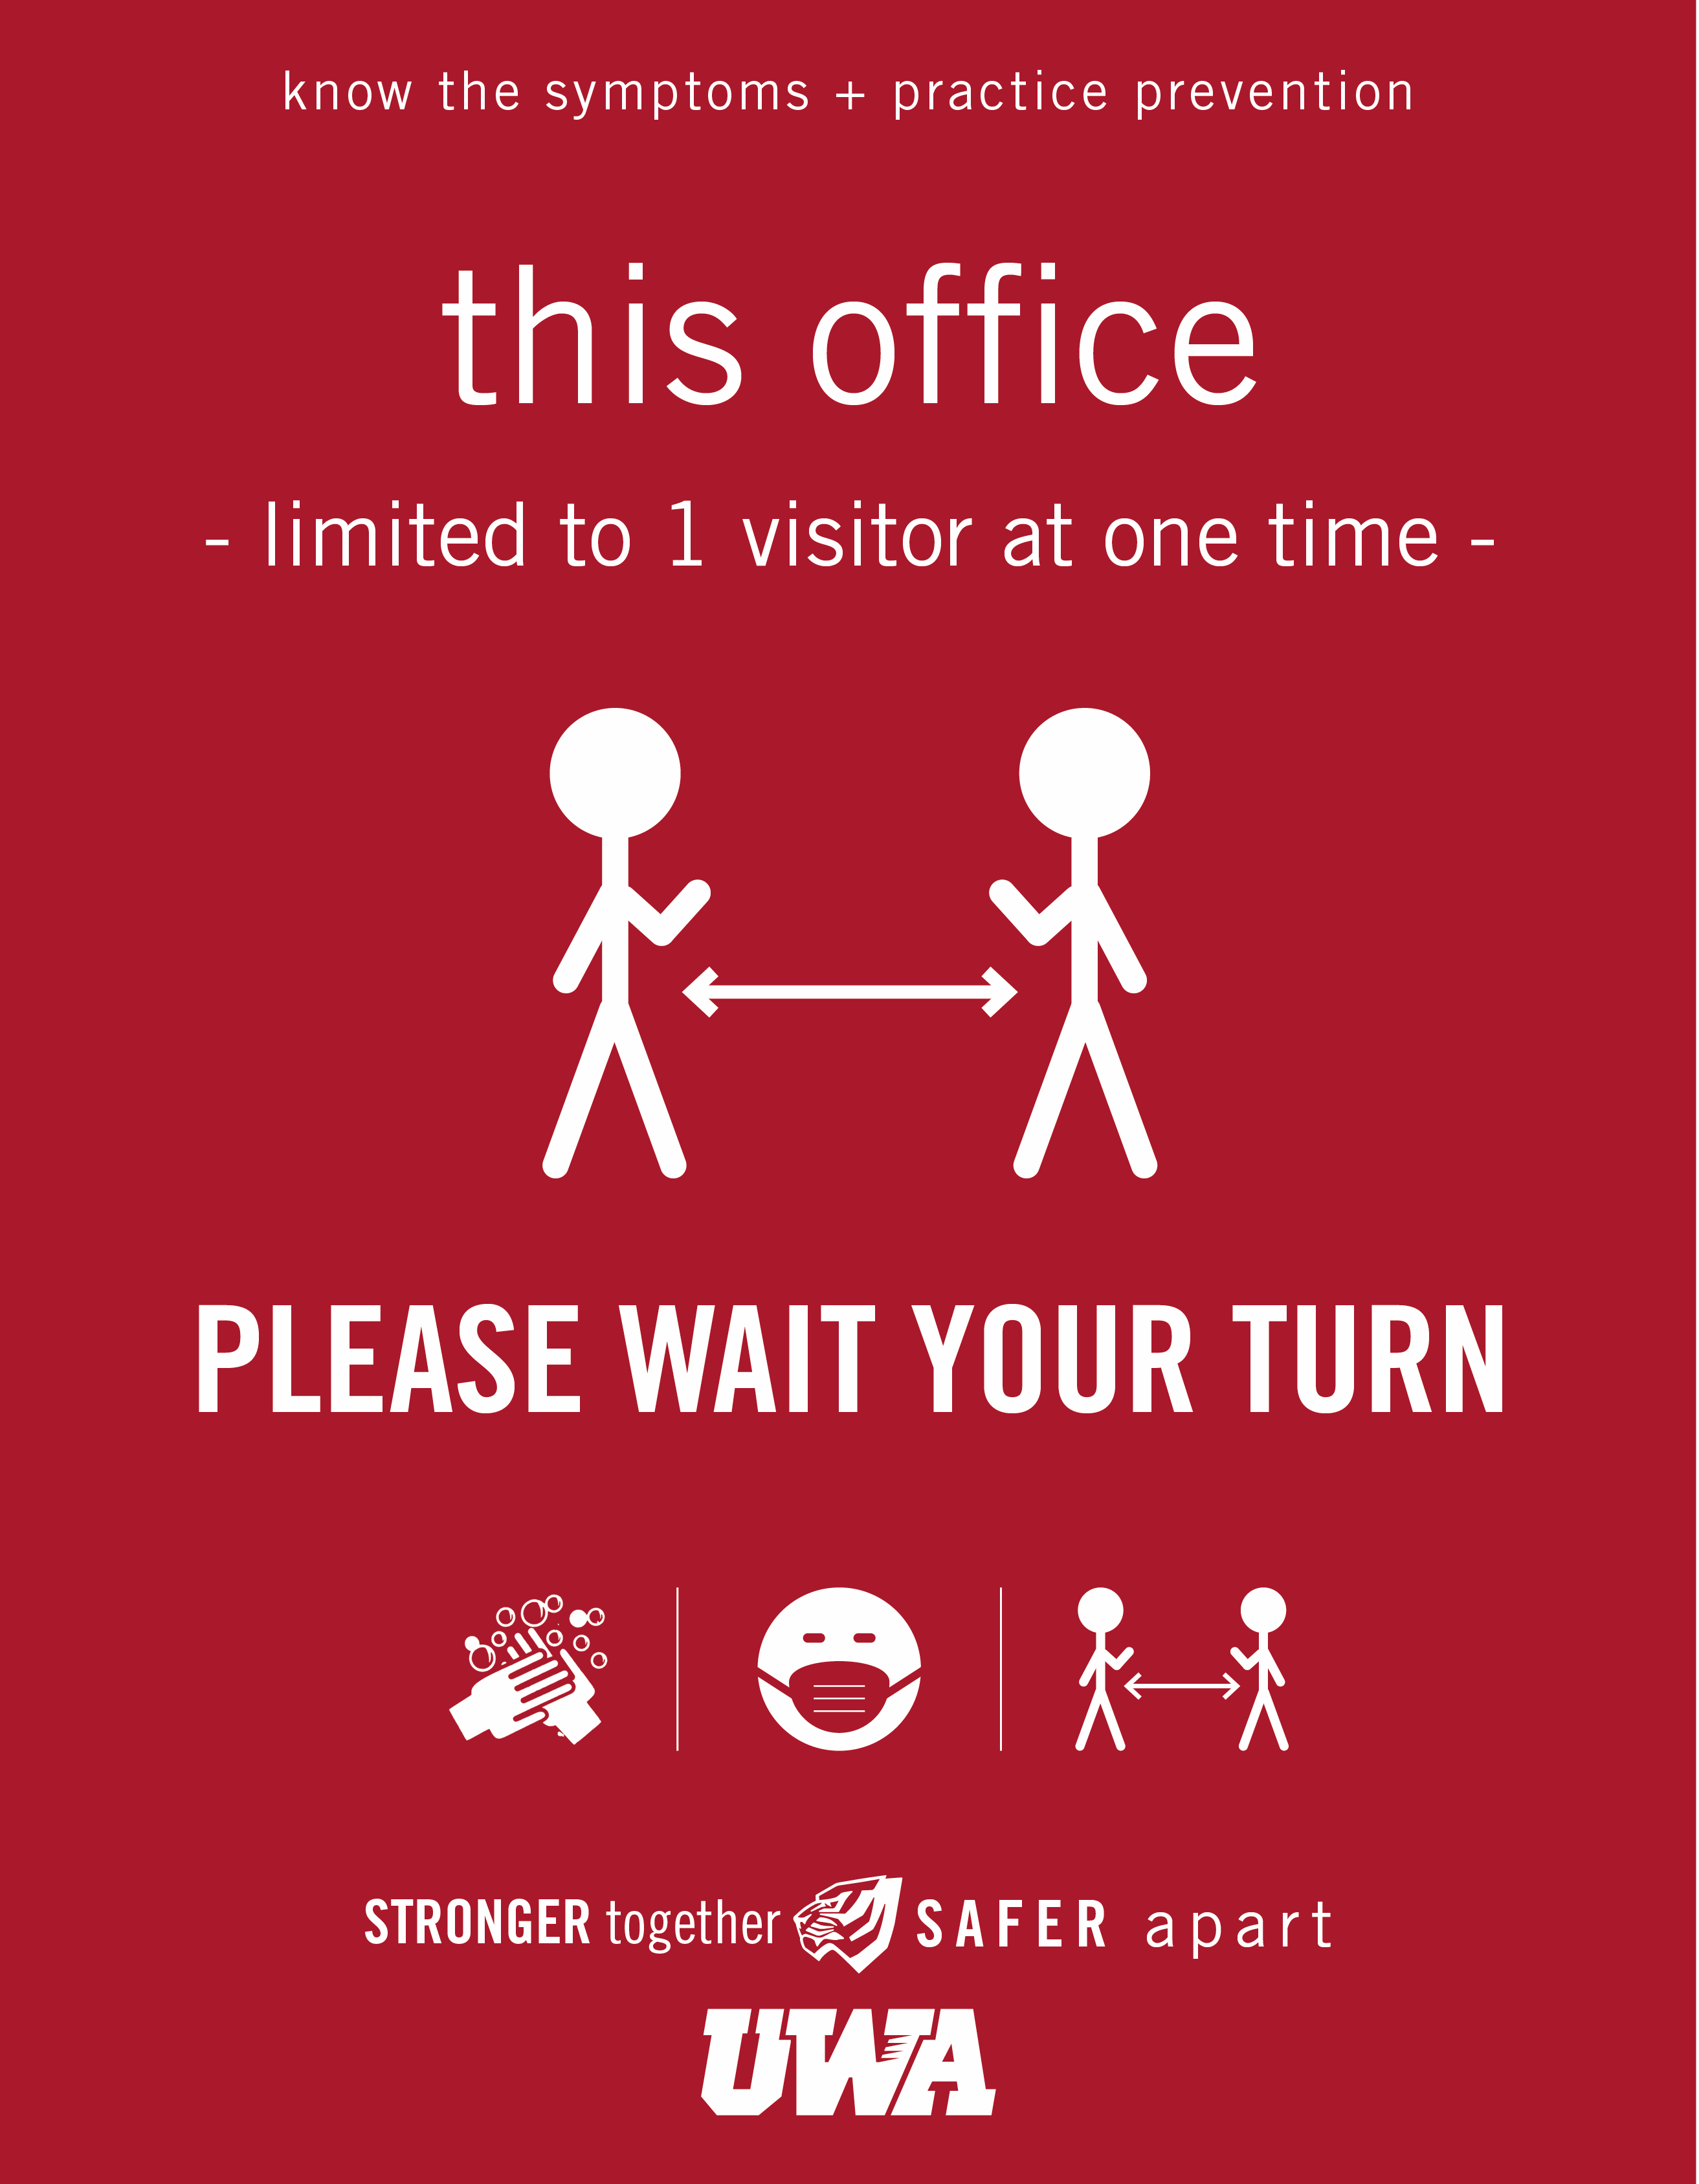 UWA Campus COVID Safety Office Limit